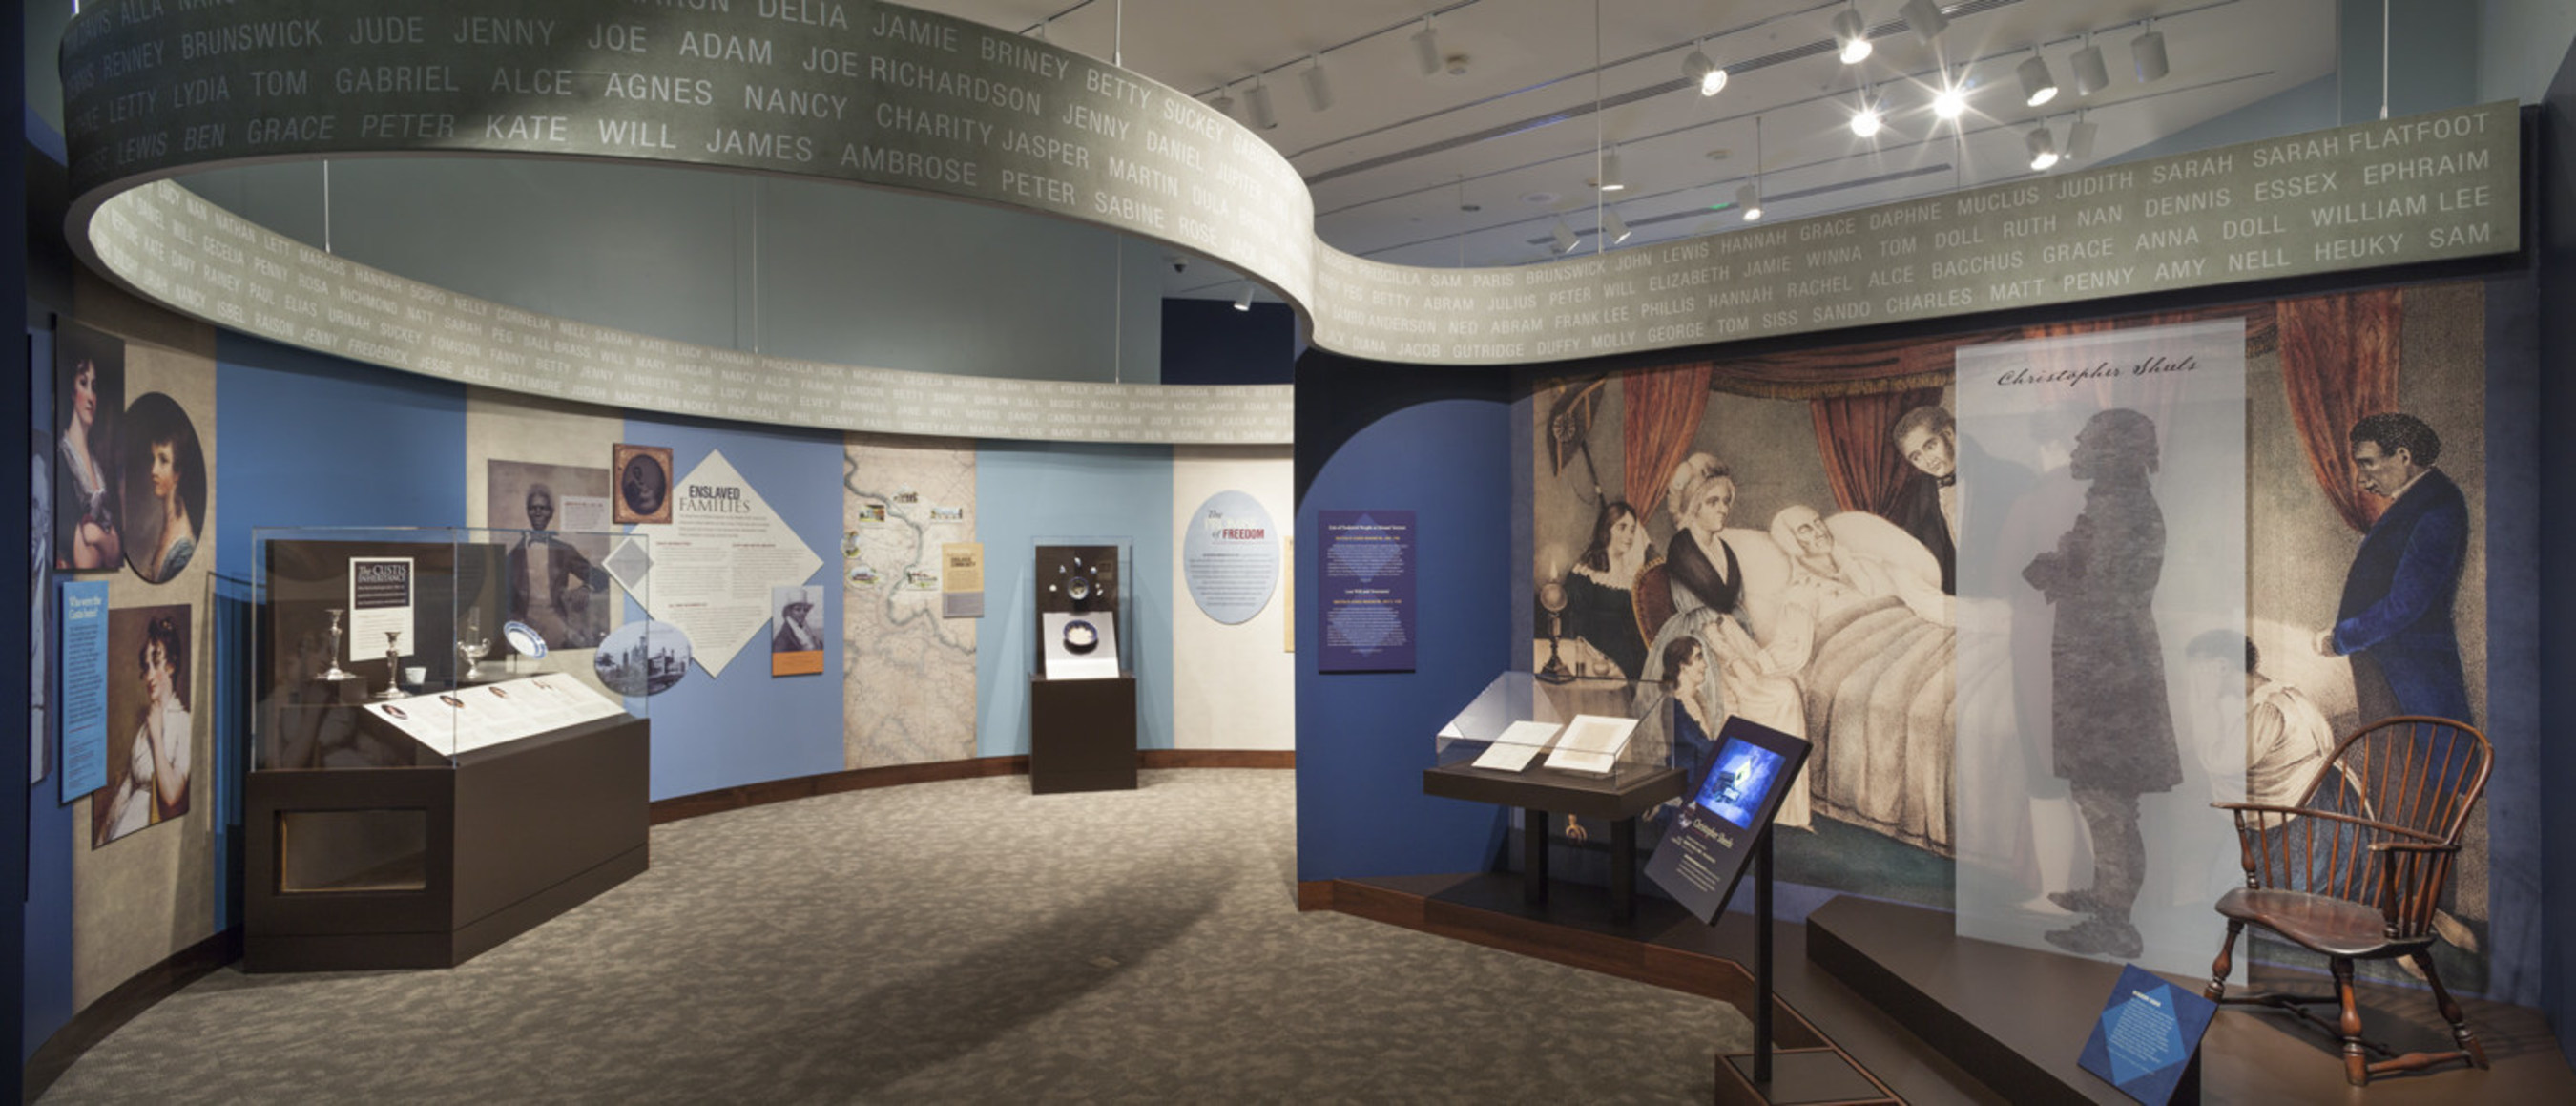 A gallery scene from Mount Vernon's newest exhbition. The exhibition, Lives Bound Together, tells the story of the enslaved men and women who worked at Mount Vernon and Washington's growing opposition to slavery.  The exhibition opened October 1, 2016 at Mount Vernon and will be on view through late 2018. www.mountvernon.org/livesboundtogether